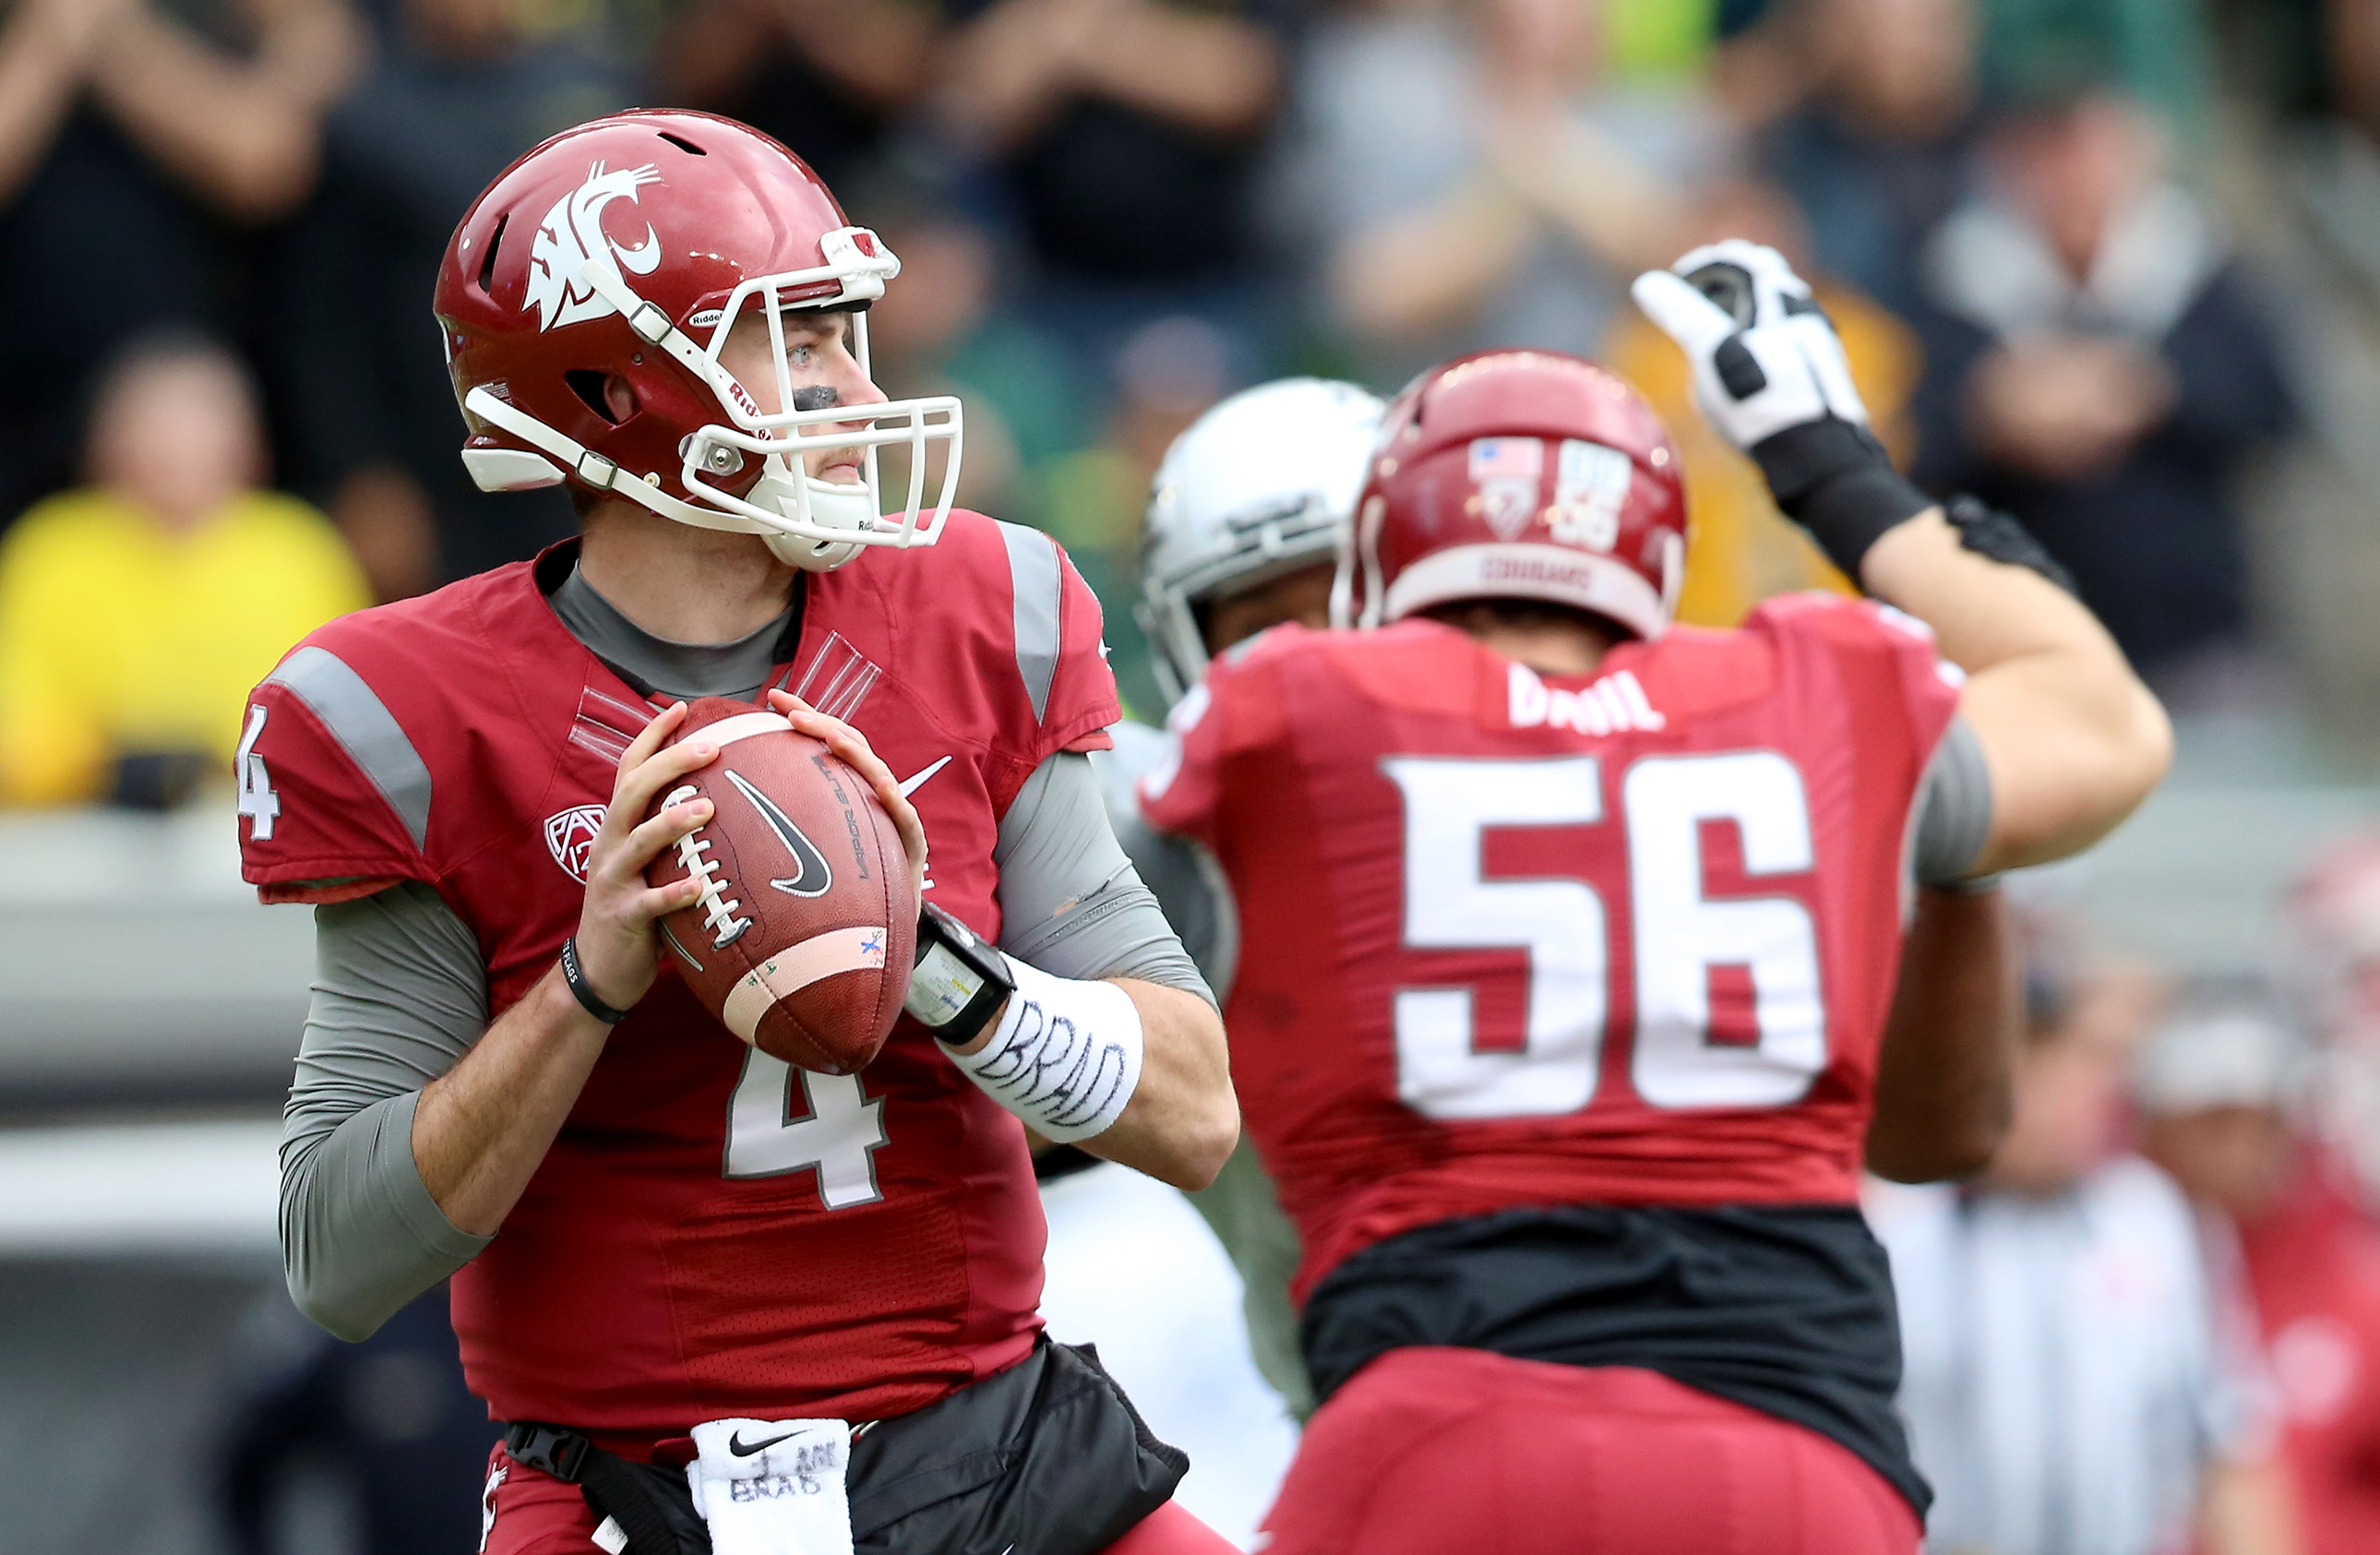 FILE - In this Oct. 10, 2015, file photo, Washington State quarterback Luke Falk (4) looks to throw during the first half of an NCAA college football game against Oregon in Eugene, Ore. Luke Falk is the latest Air Raid quarterback to benefit from Wazzu's